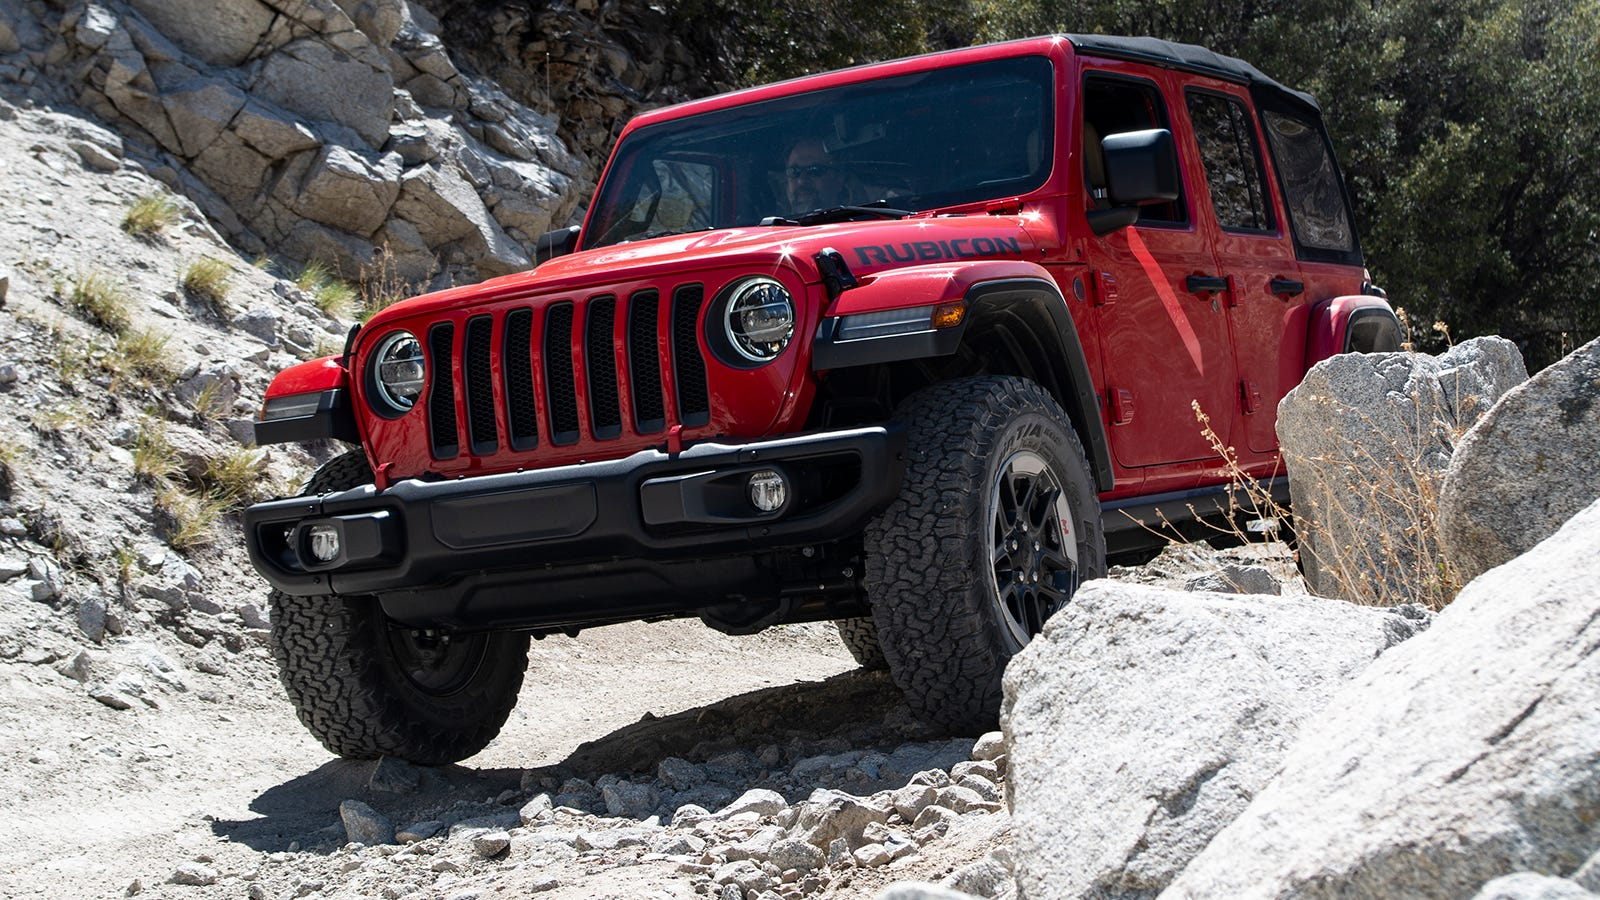 ff4a9c062a42c 2018 Jeep Wrangler Rubicon  What We Learned Over 600 Hard Miles